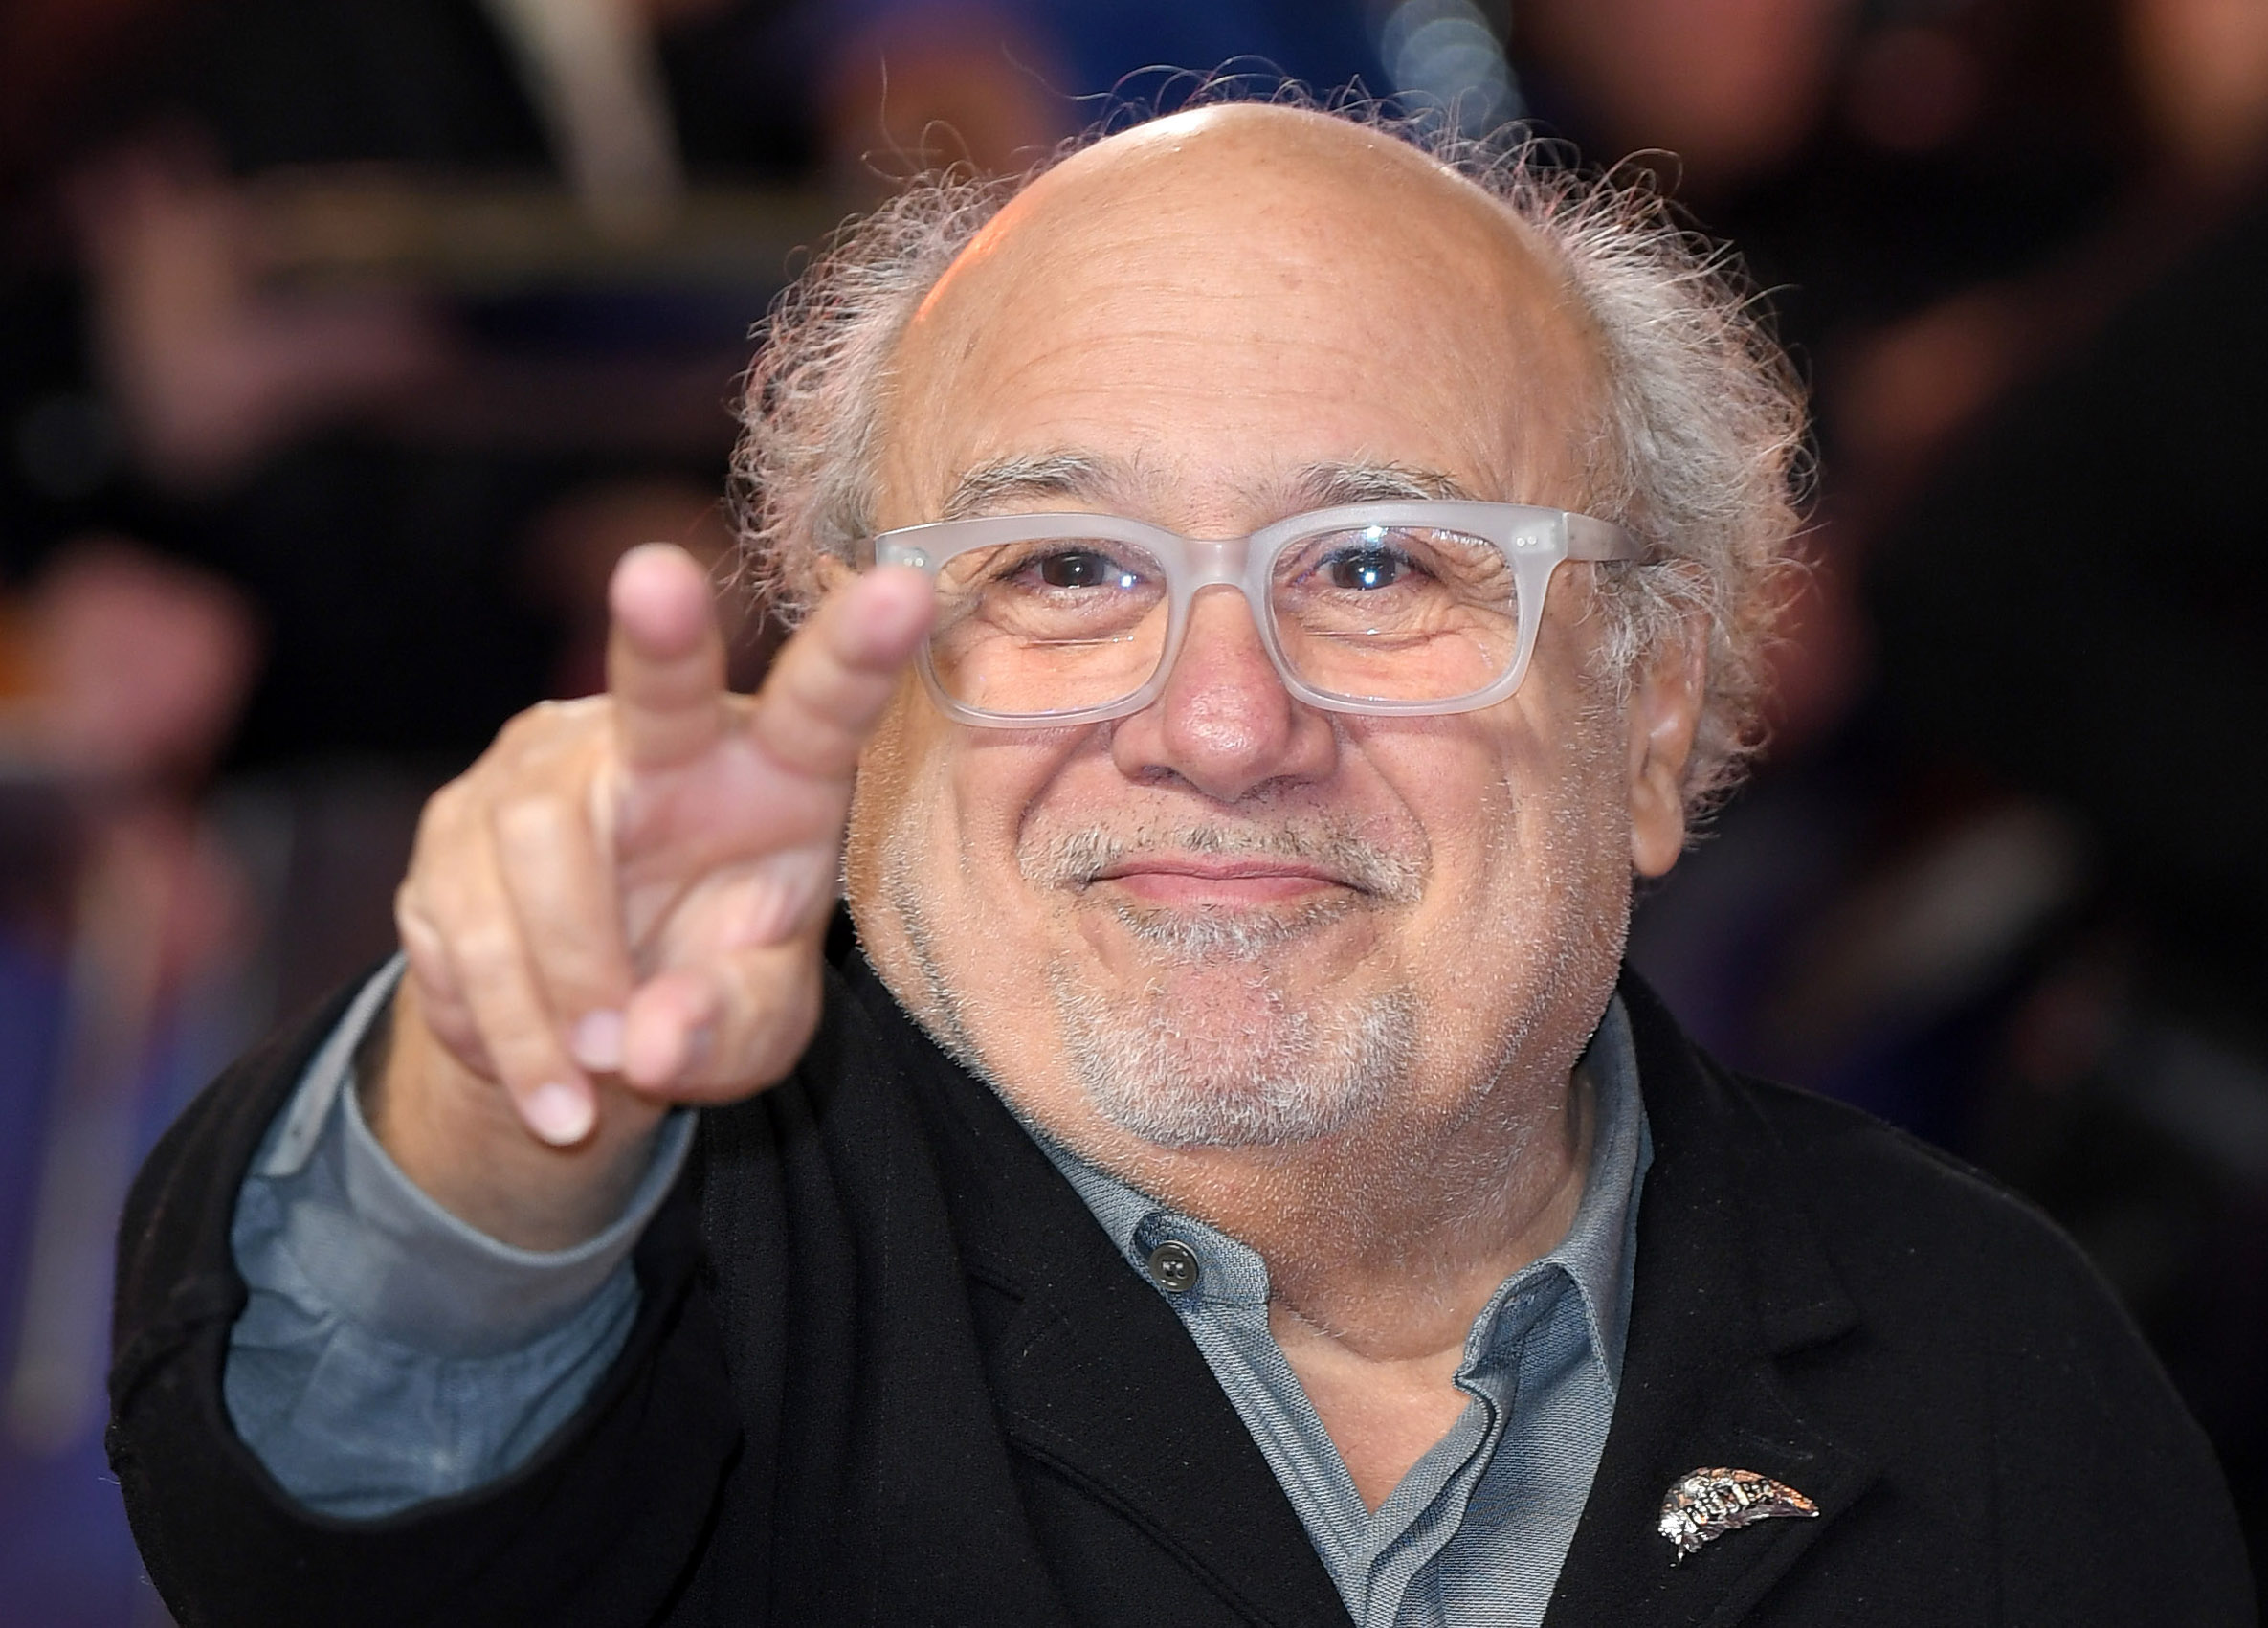 The people have spoken – and they want Danny DeVito to take over as Wolverine